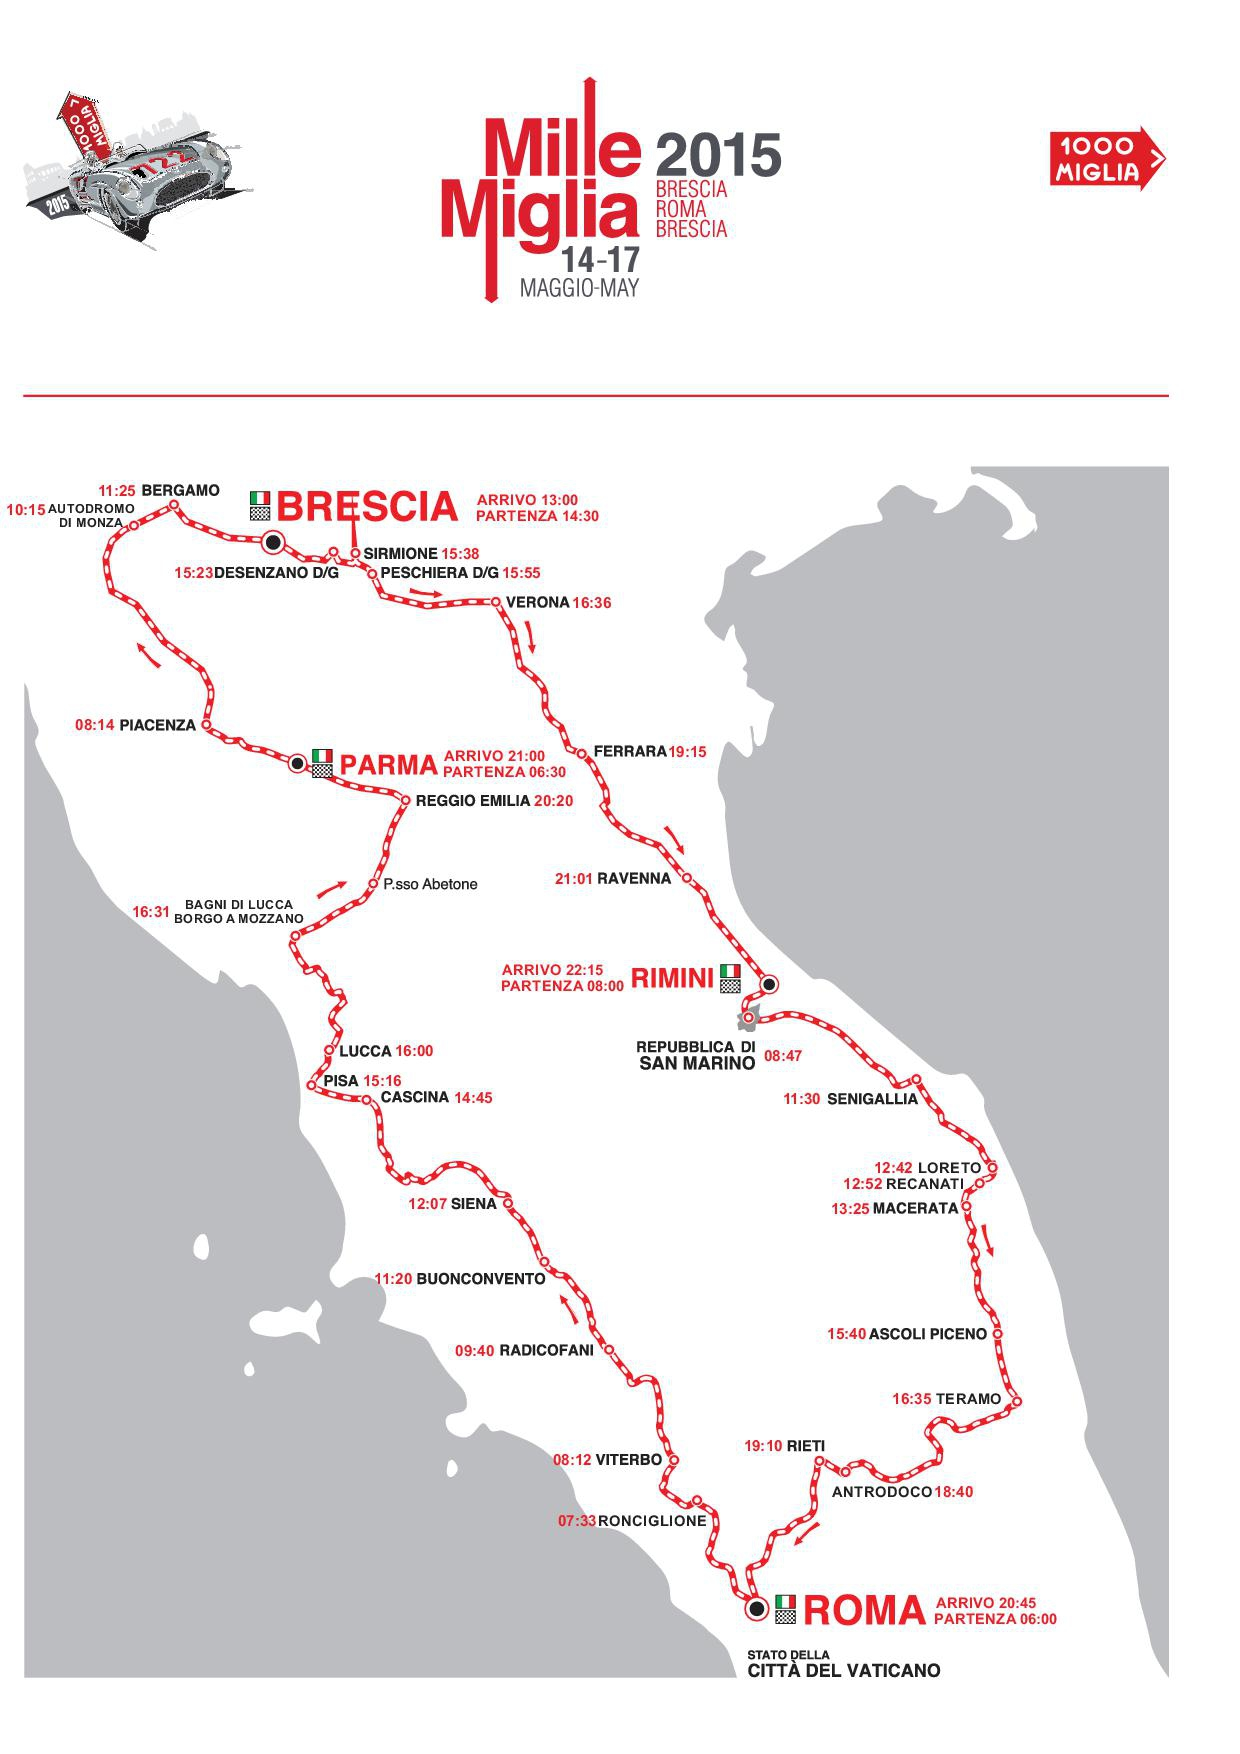 Roadmap of Mille Miglia 2015